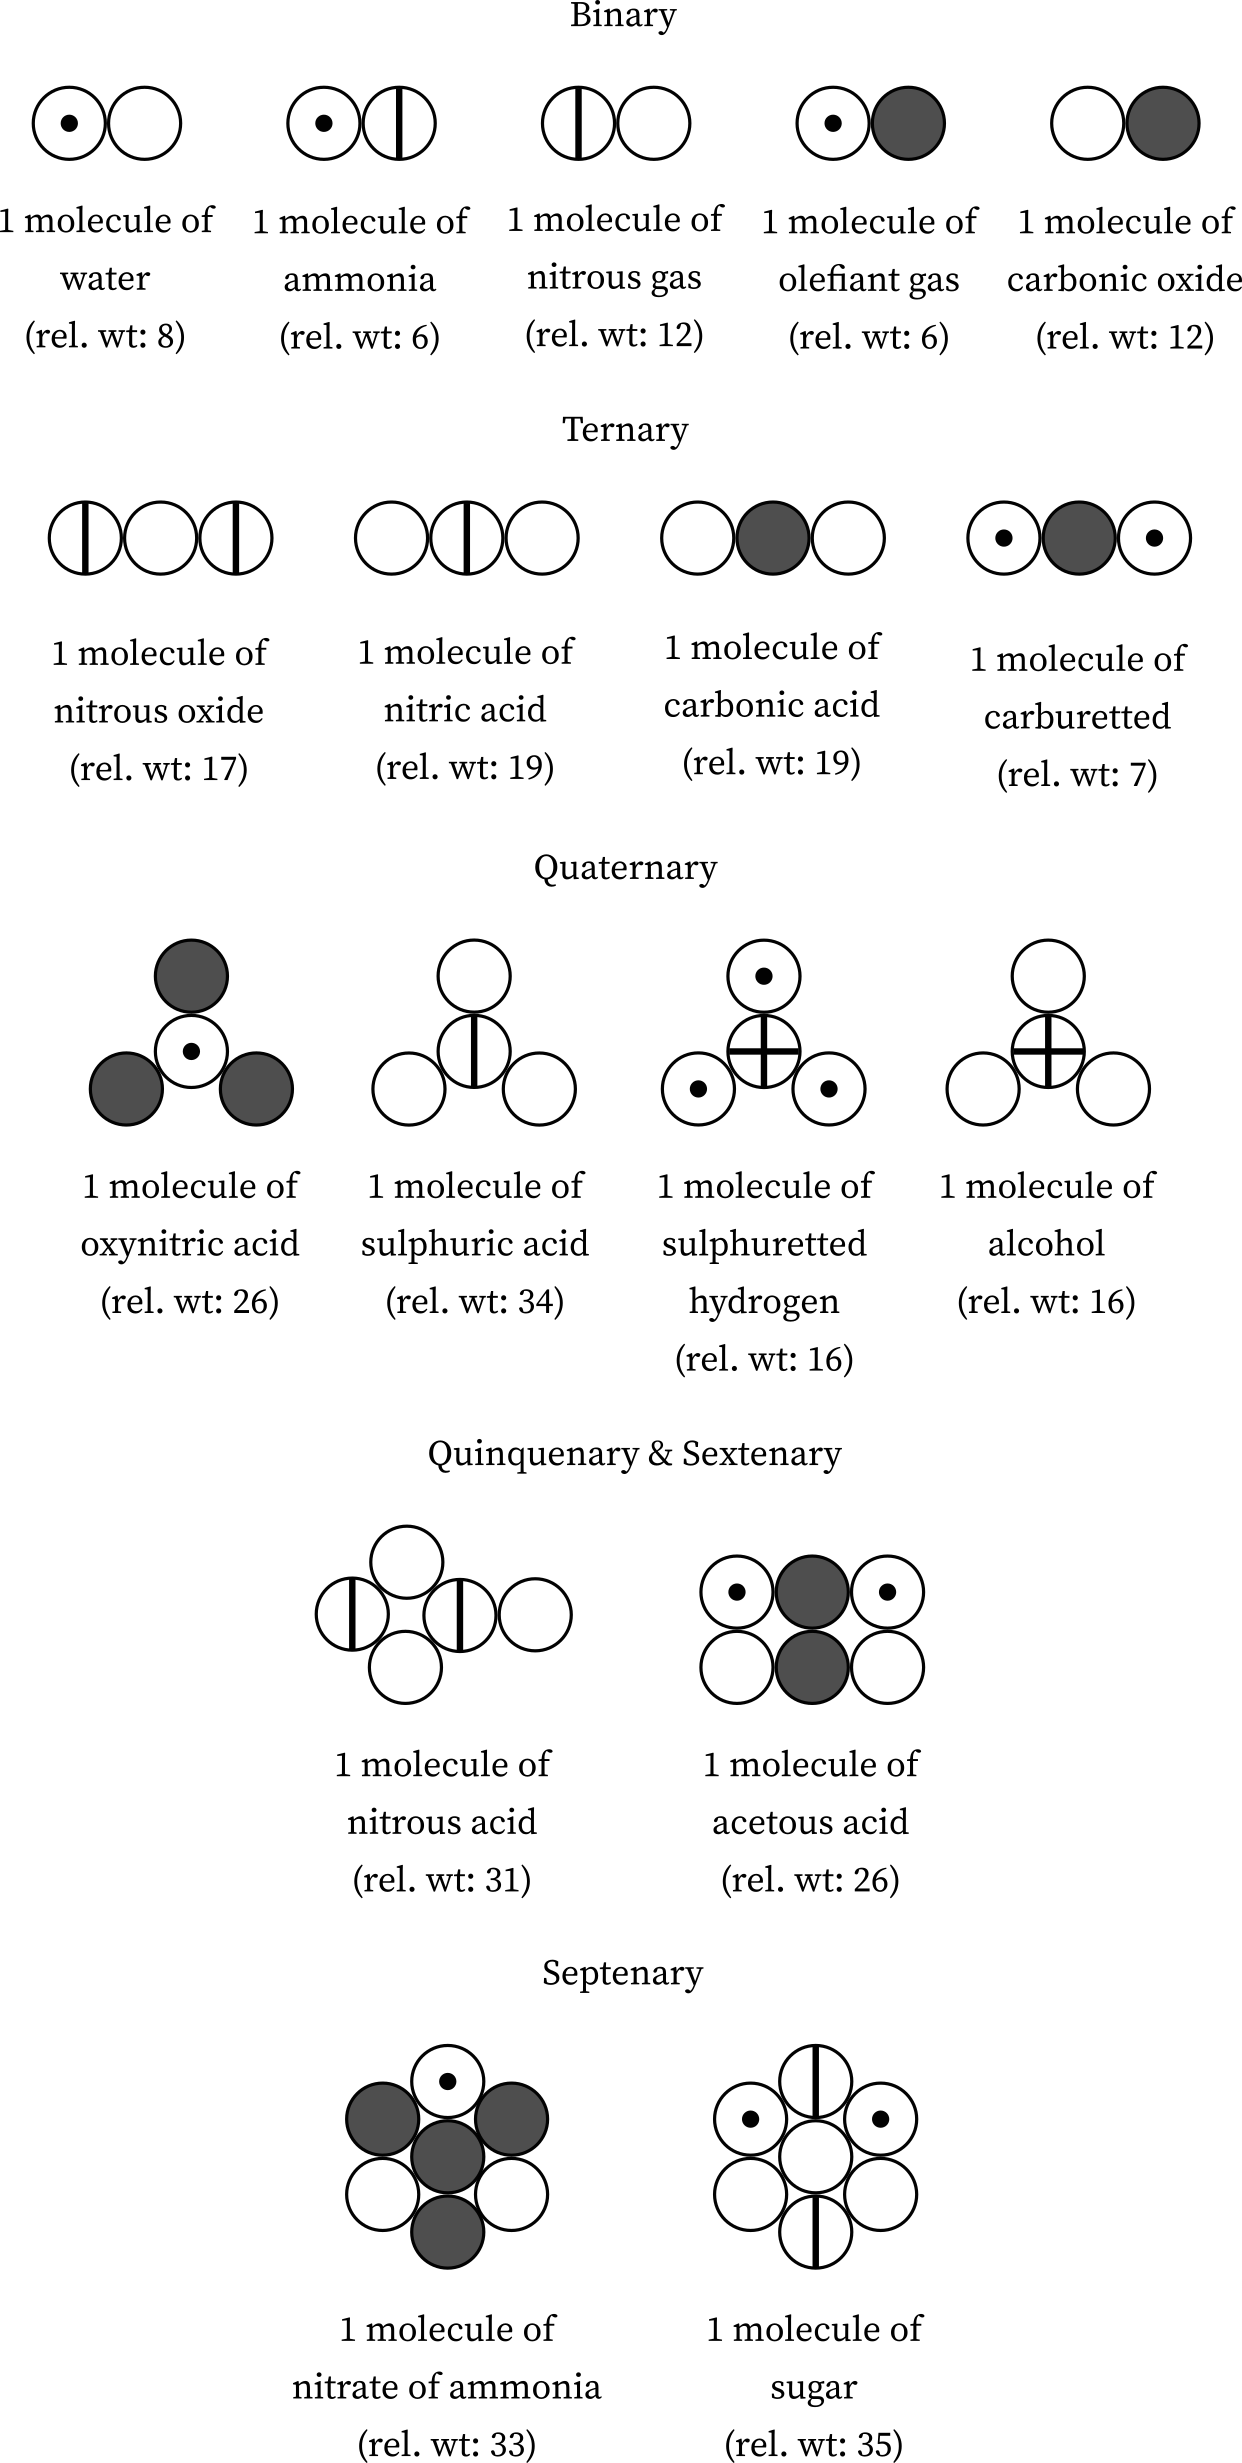 List of Compounds with Symbols and their Relative Weights by Dalton